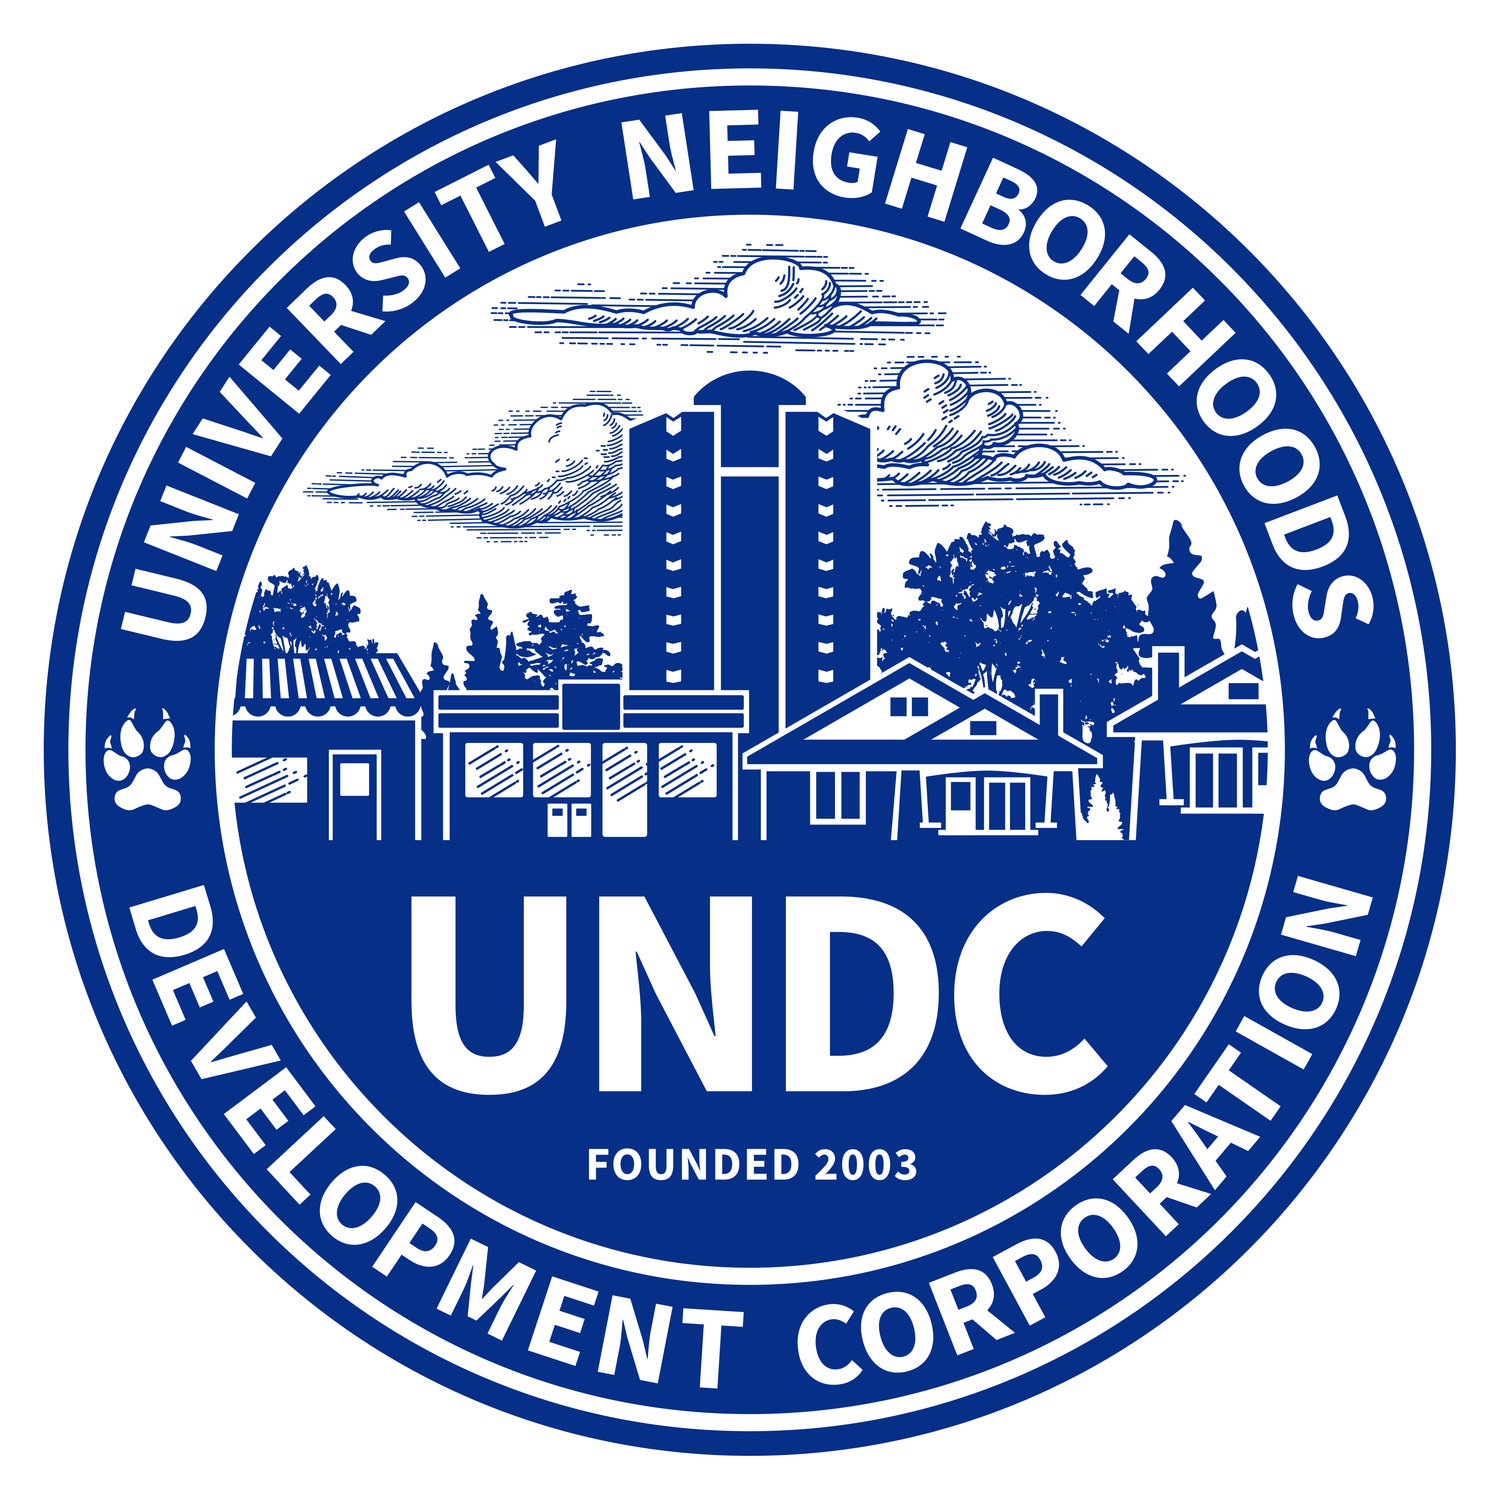 University Neighborhoods Development Corporation